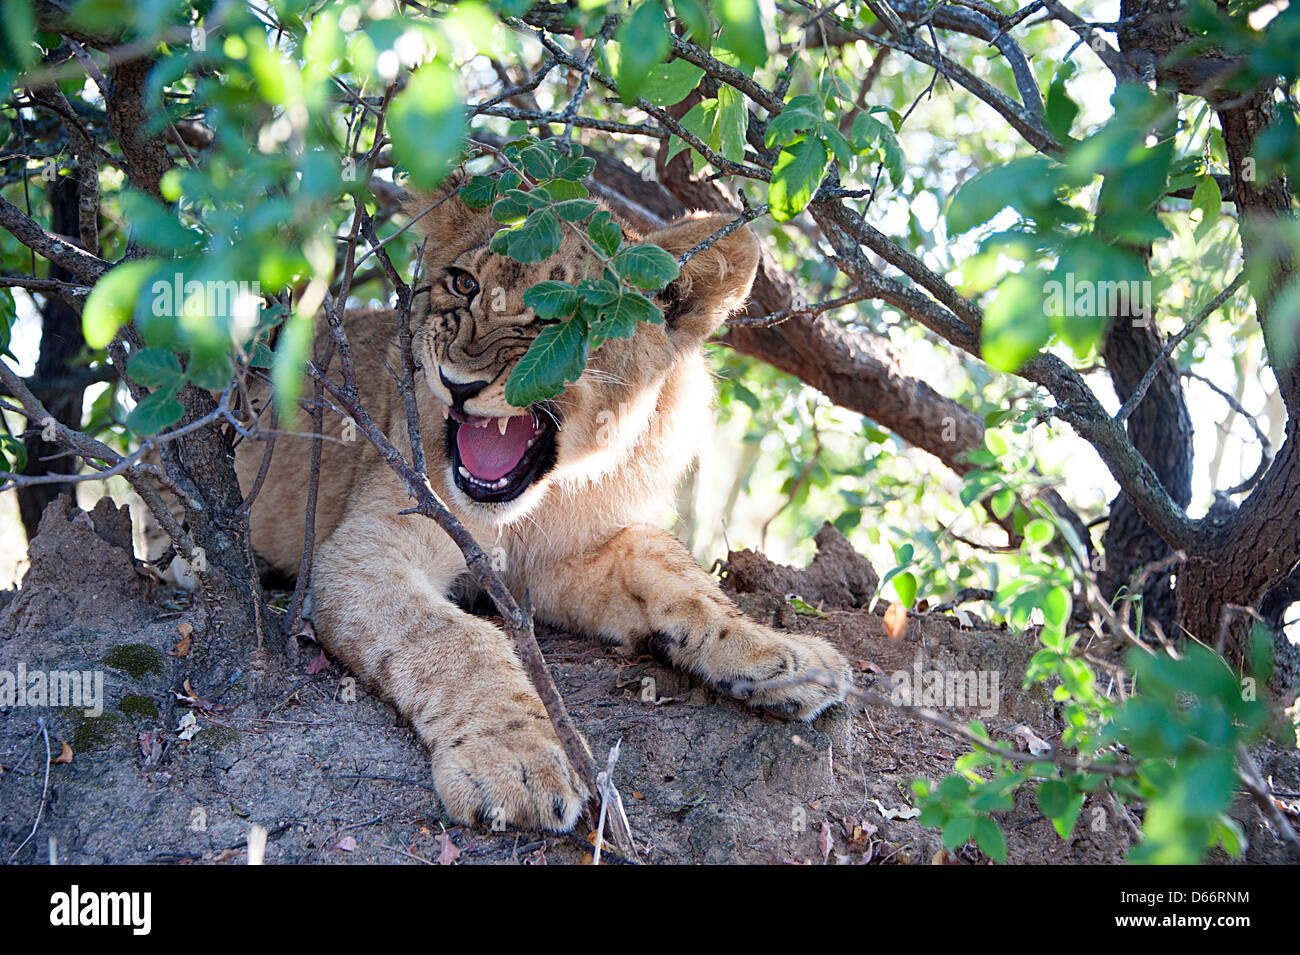 Lion cub on rock snarling.  Antelope Park, Zimbabwe, Africa - Stock Image